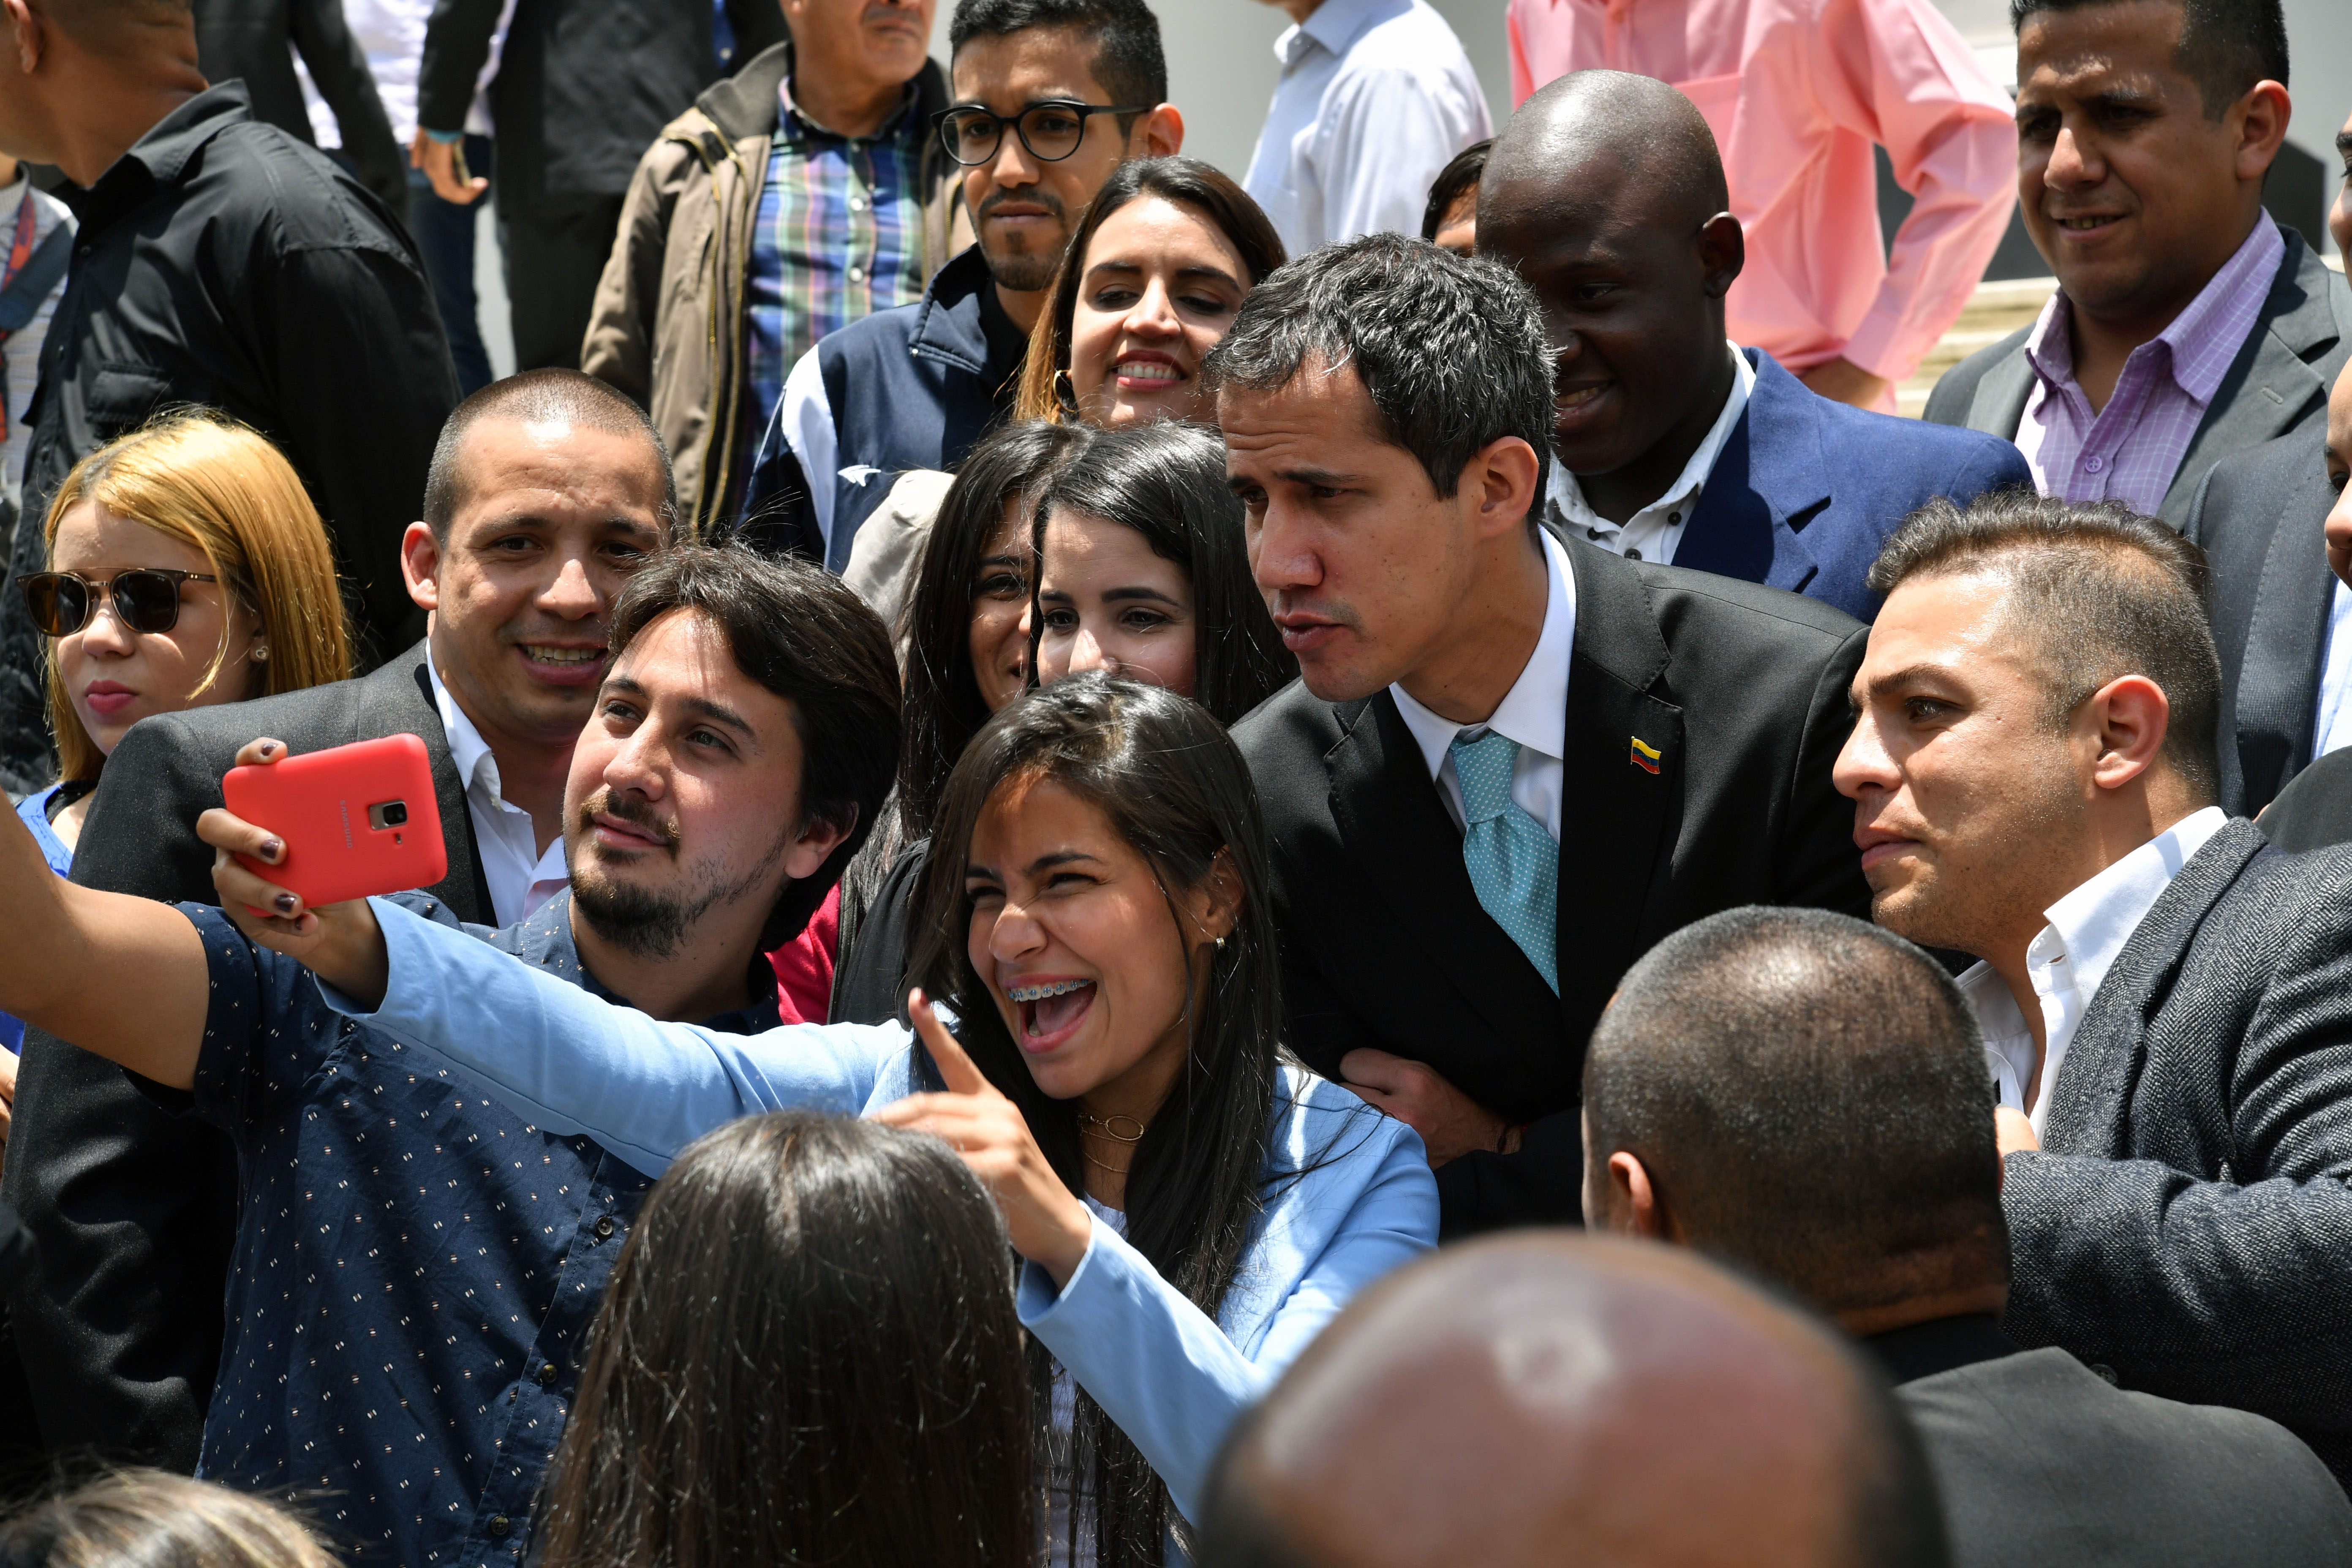 "Juan Guaido (C), the speaker of the Venezuelan opposition-controlled National Assembly who declared himself interim president in January, poses for a selfie with supporters after attending the ""Meeting with Young Leaders for Venezuela"", at the Federal Legislative Palace in Caracas on April 4, 2019. (YURI CORTEZ/AFP/Getty Images)"